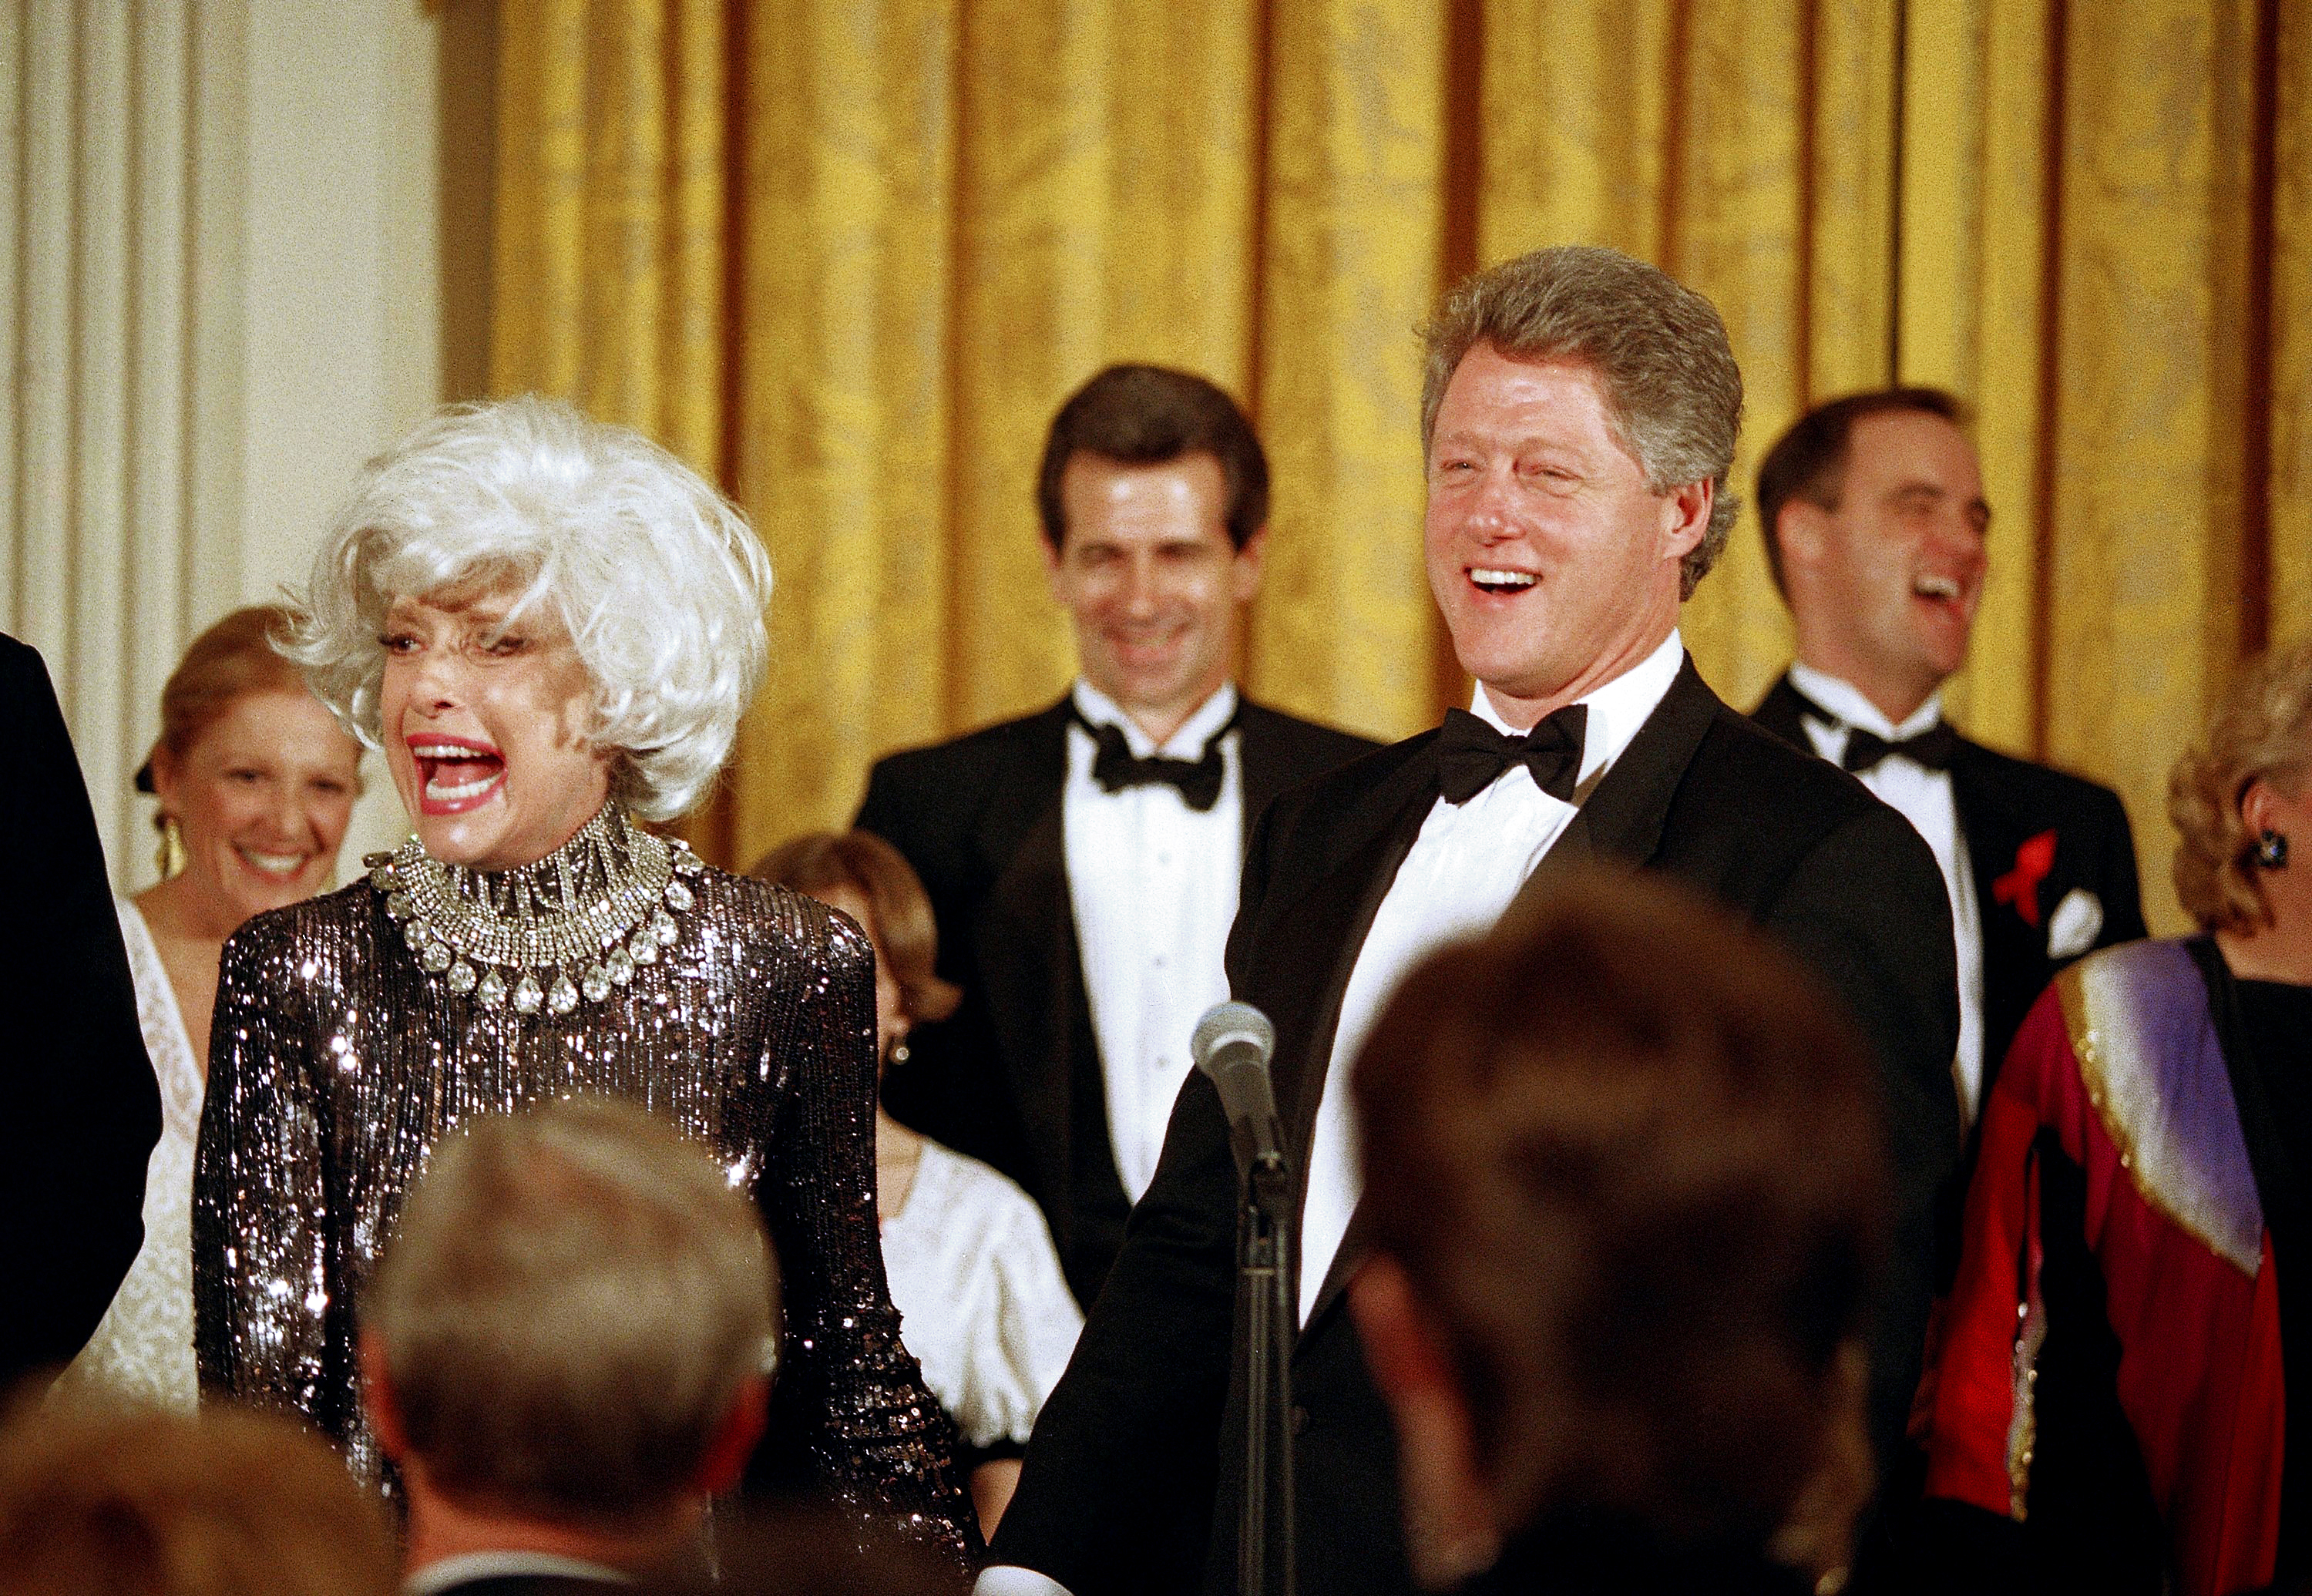 President Bill Clinton greets Carol Channing after she and several others provided entertainment at a White House dinner for the National Governors Association, Feb. 1, 1993 in Washington. (Wilfredo Lee/AP)